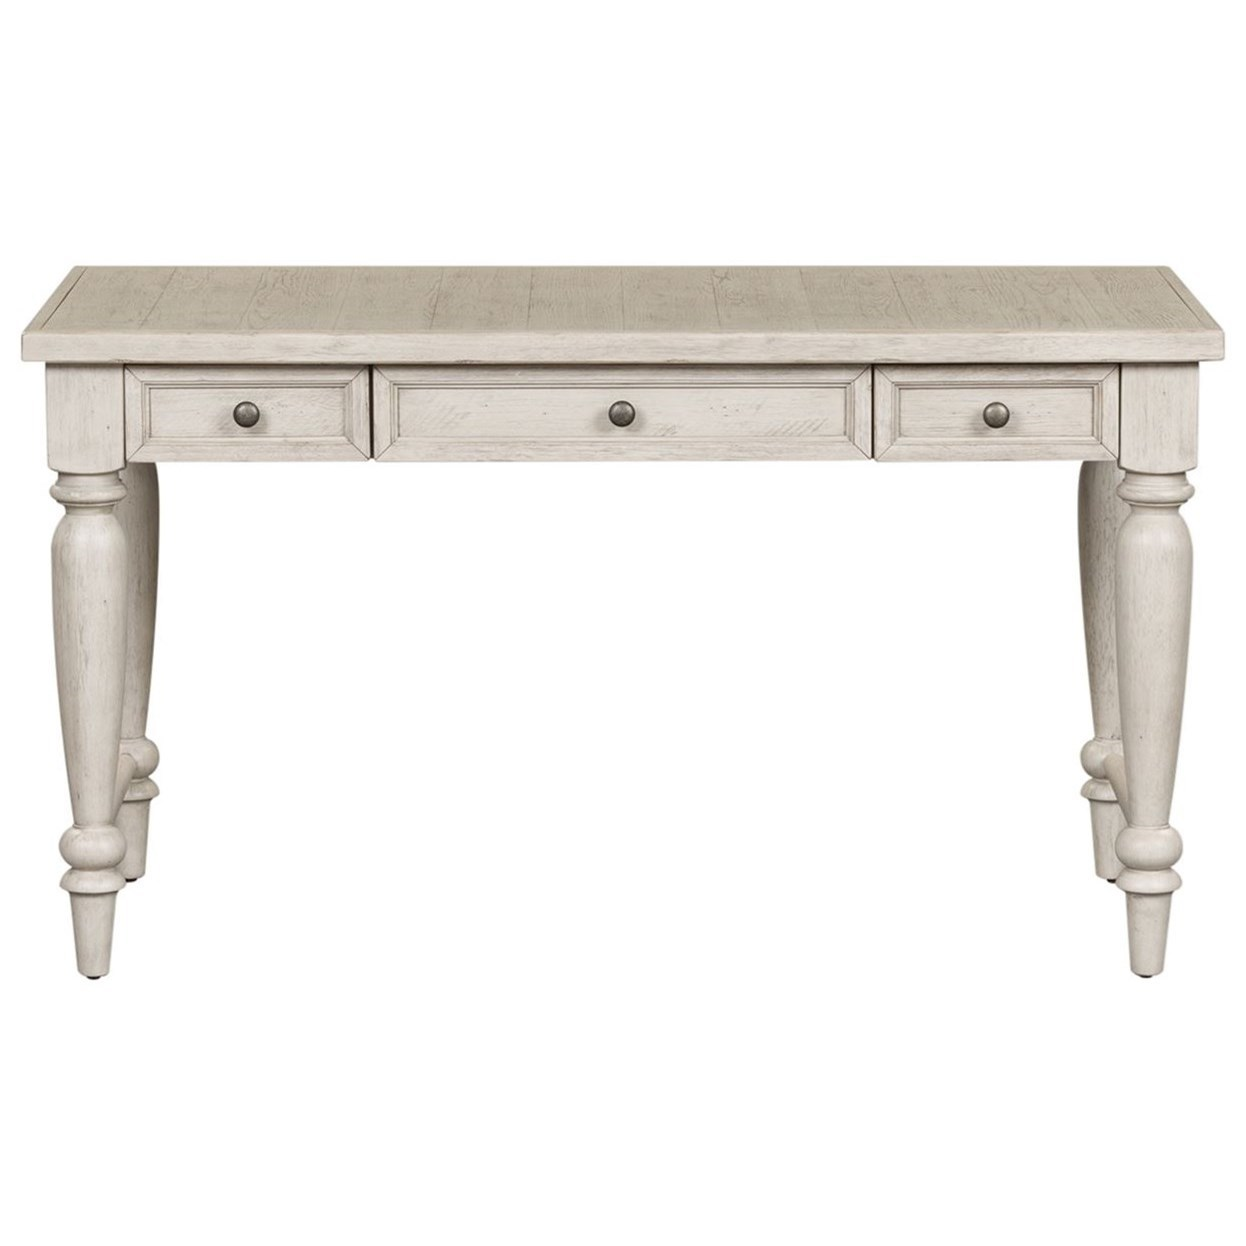 Harvest Home Writing Desk by Libby at Walker's Furniture